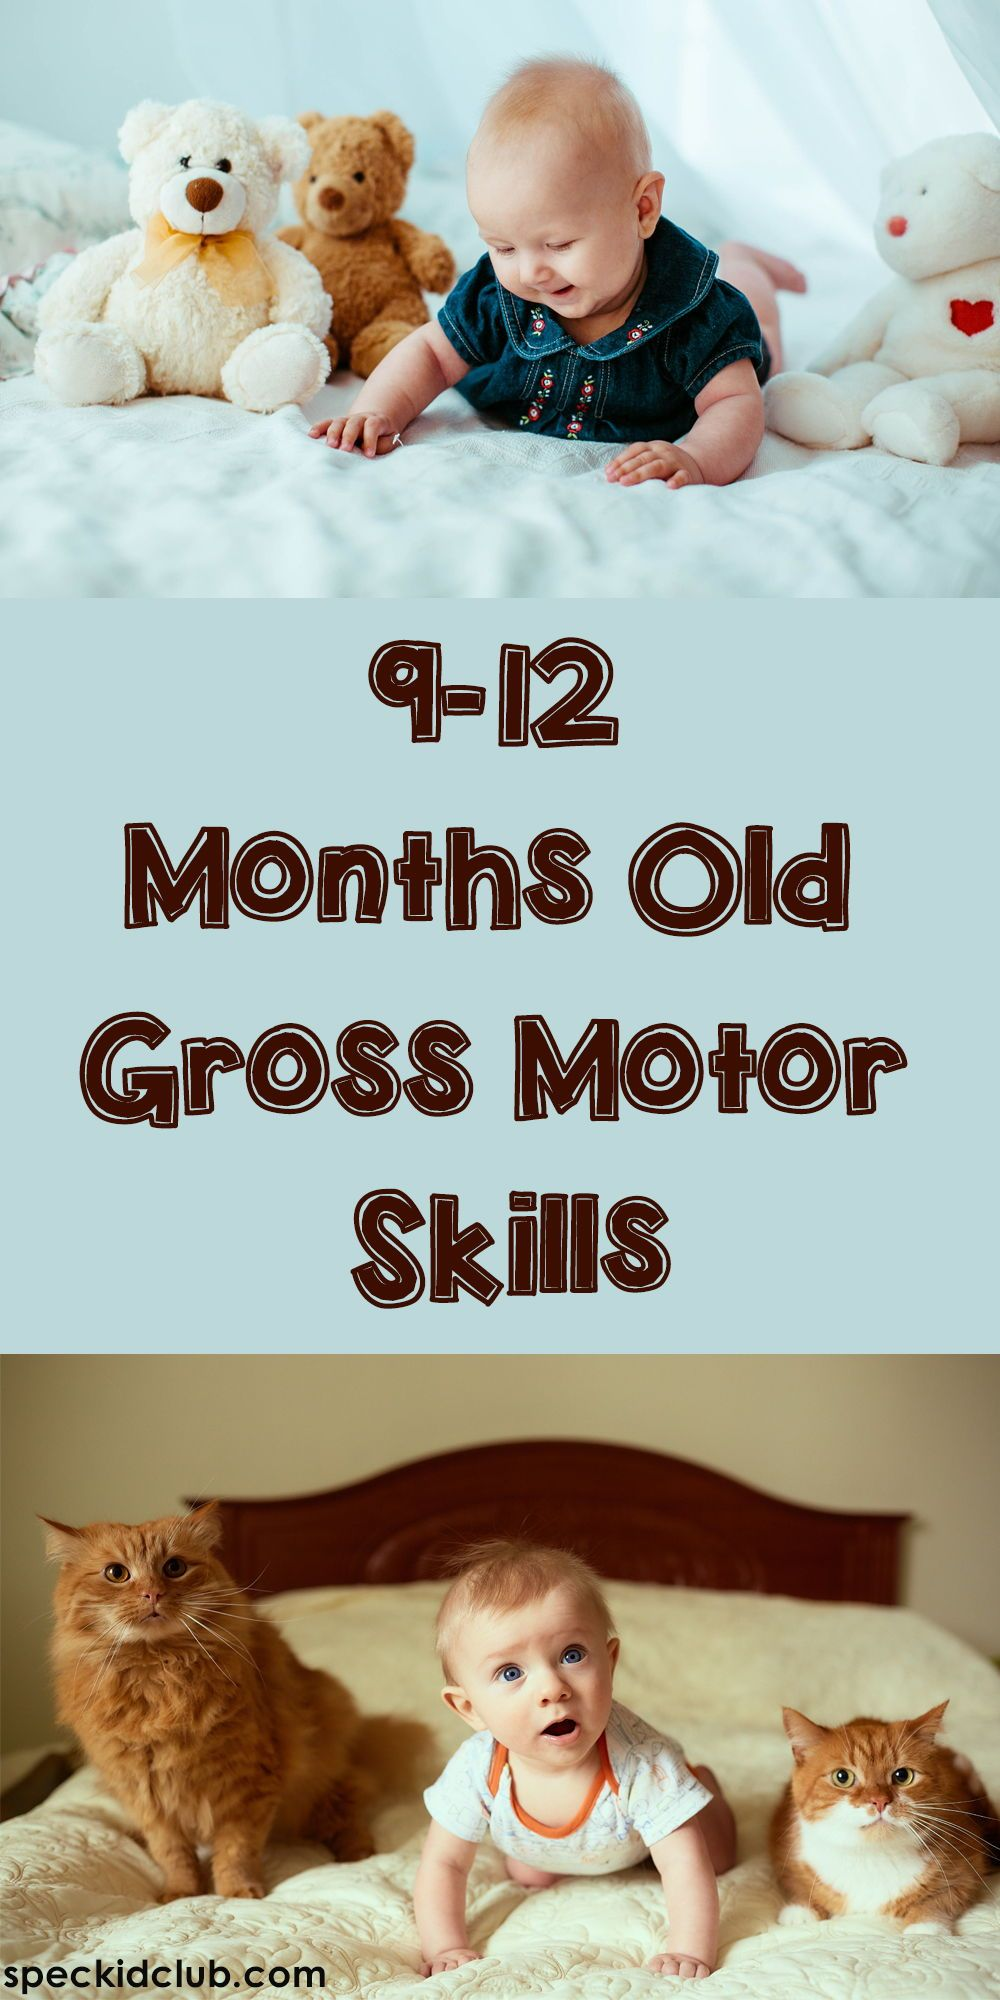 9 12 Months Old Gross Motor Skills Play Based Learning Activities Physical Milestones Physical Development